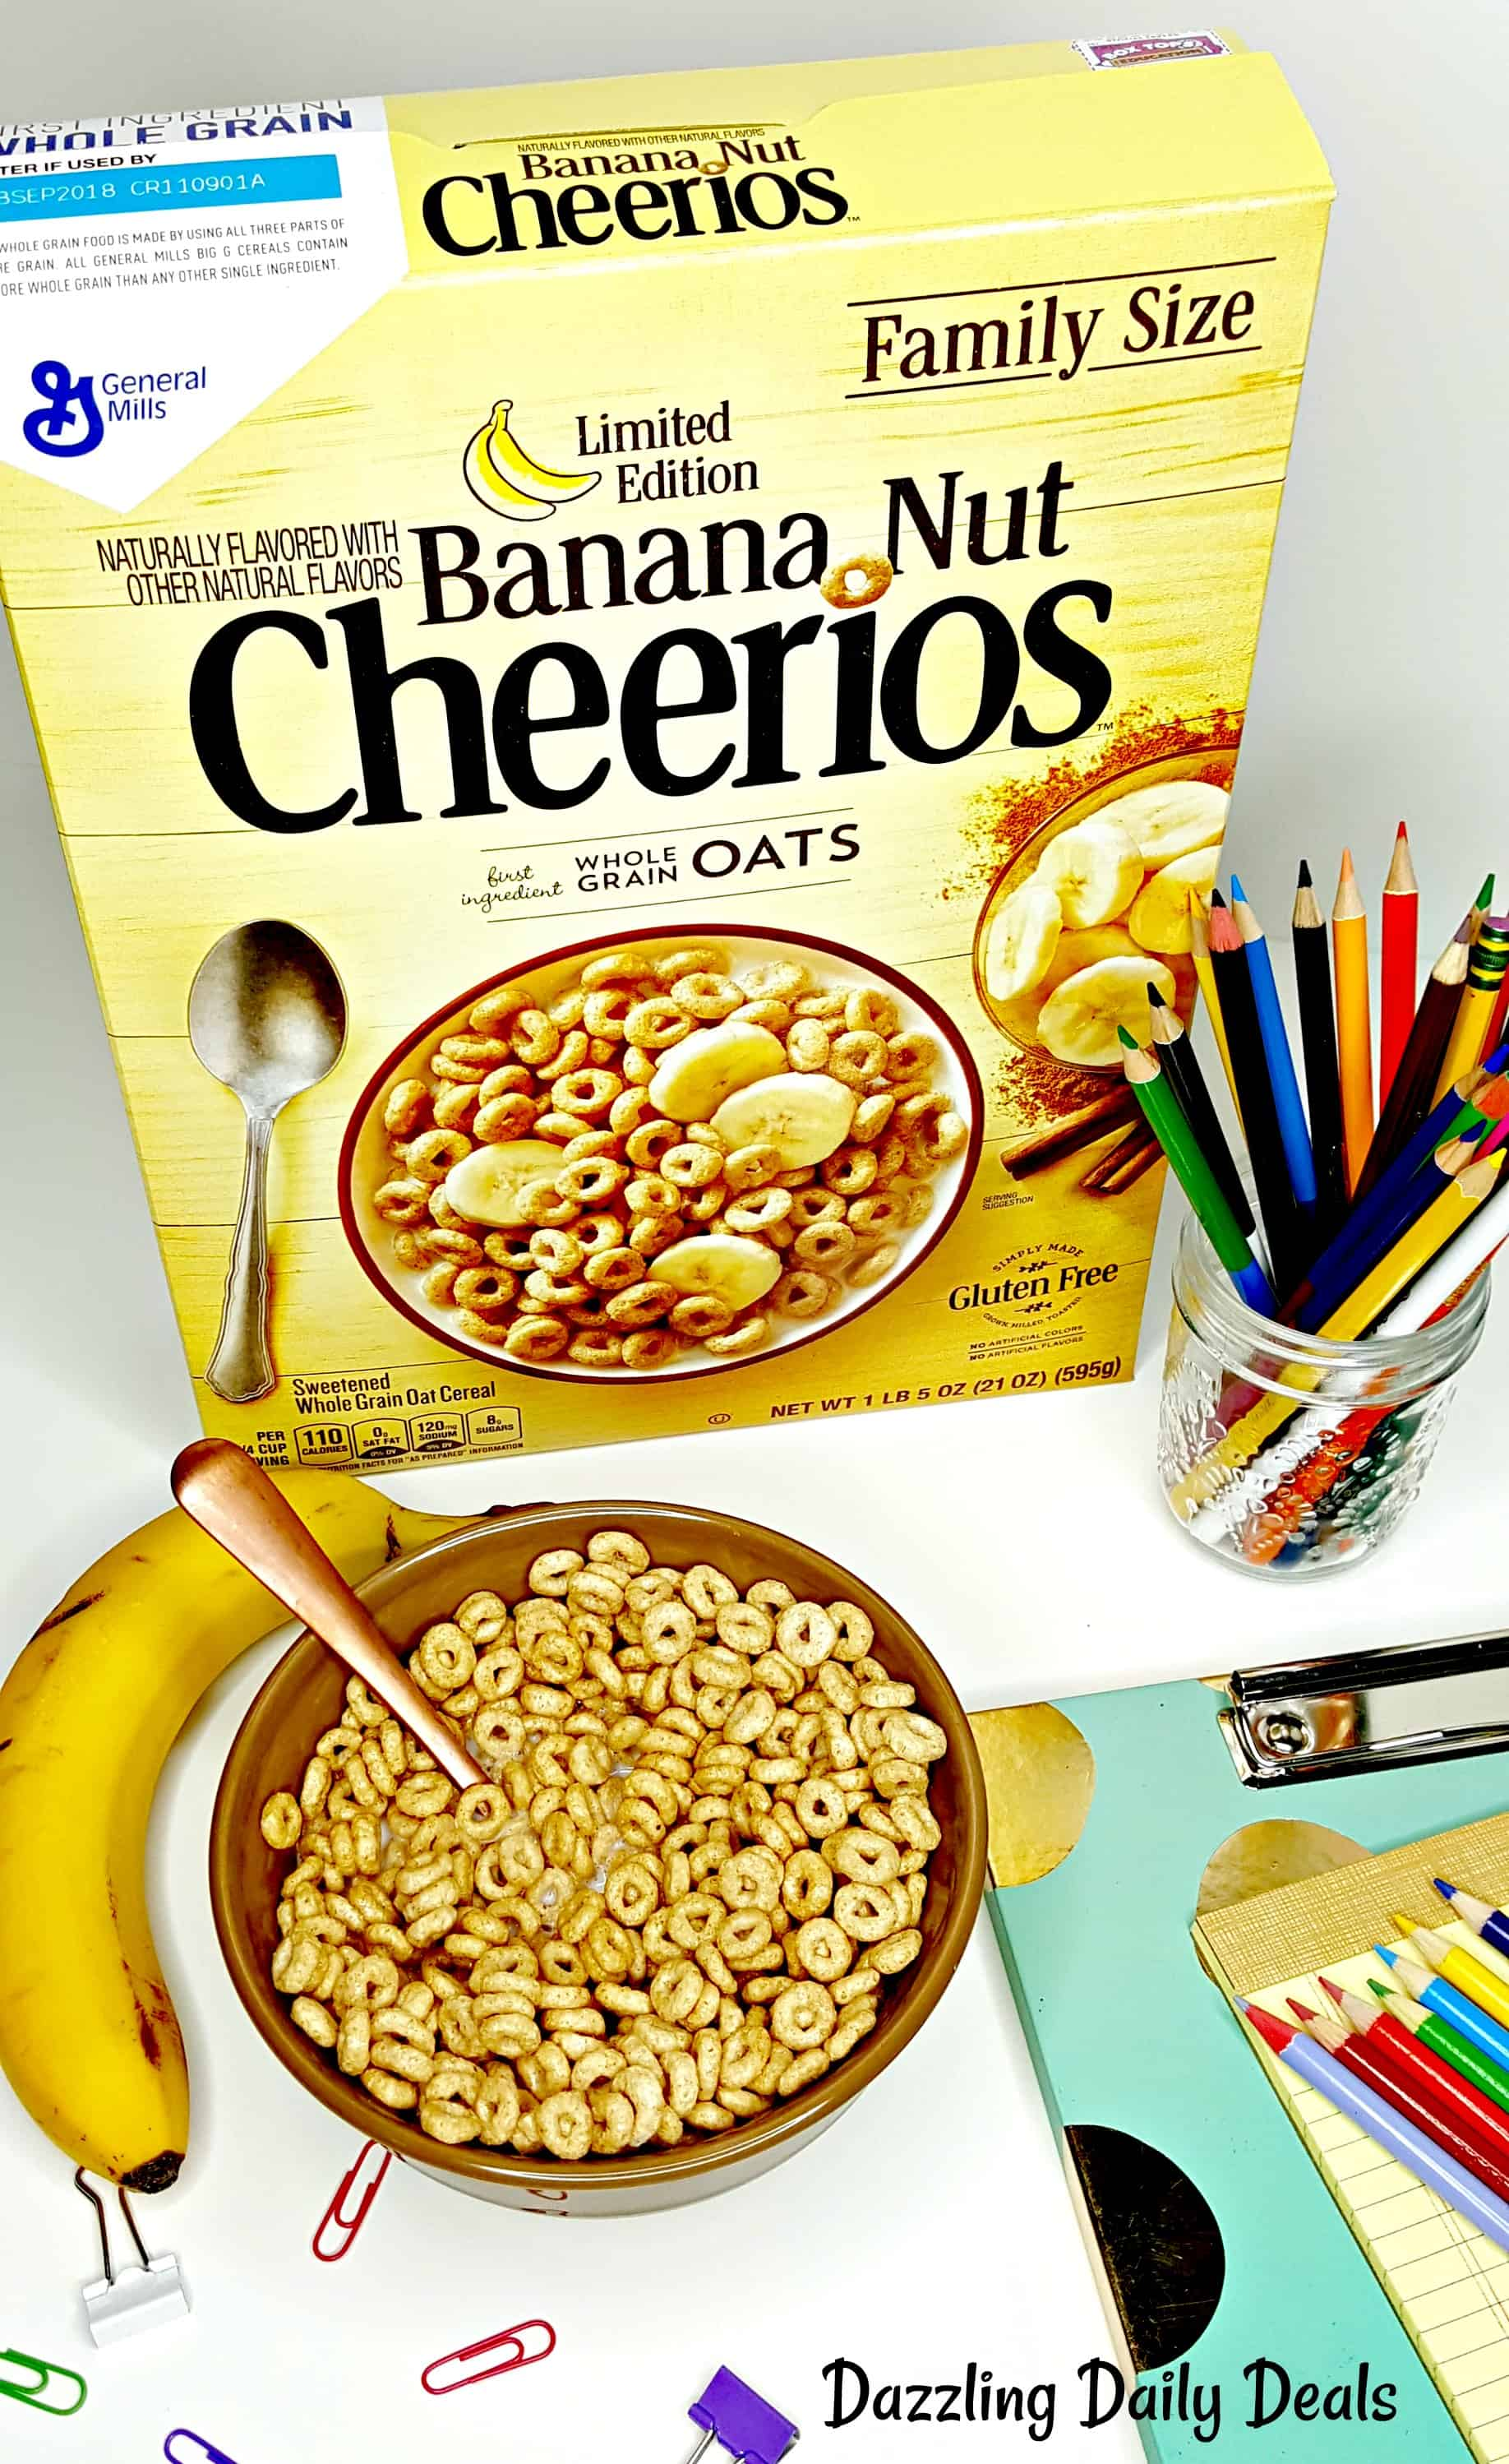 Reputable General Mills Banana Nut Leftover Pie Start Back To School Off Right I Have To Put My Footdown After All Holiday Treats My Kids Have Gotten Used Torunning Straight nice food Banana Nut Cheerios